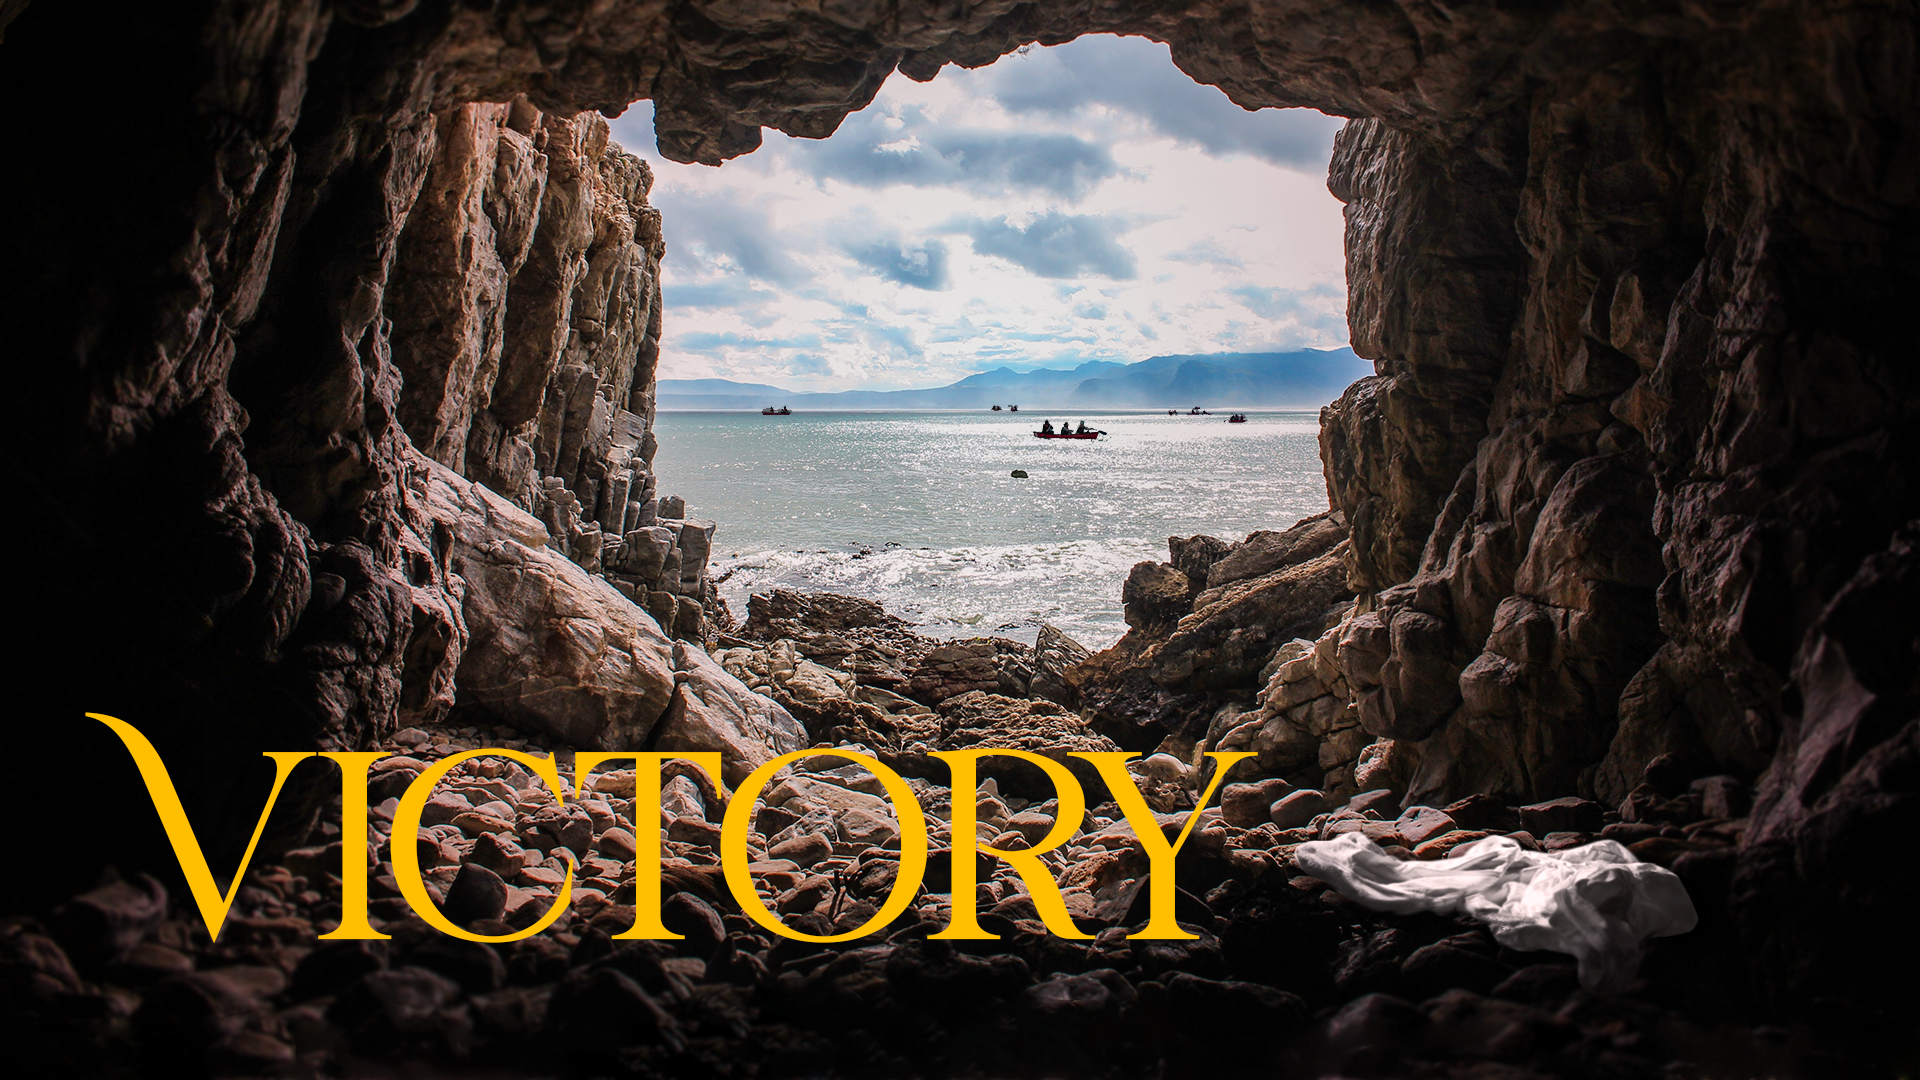 Easter Sunday 2021: Victory